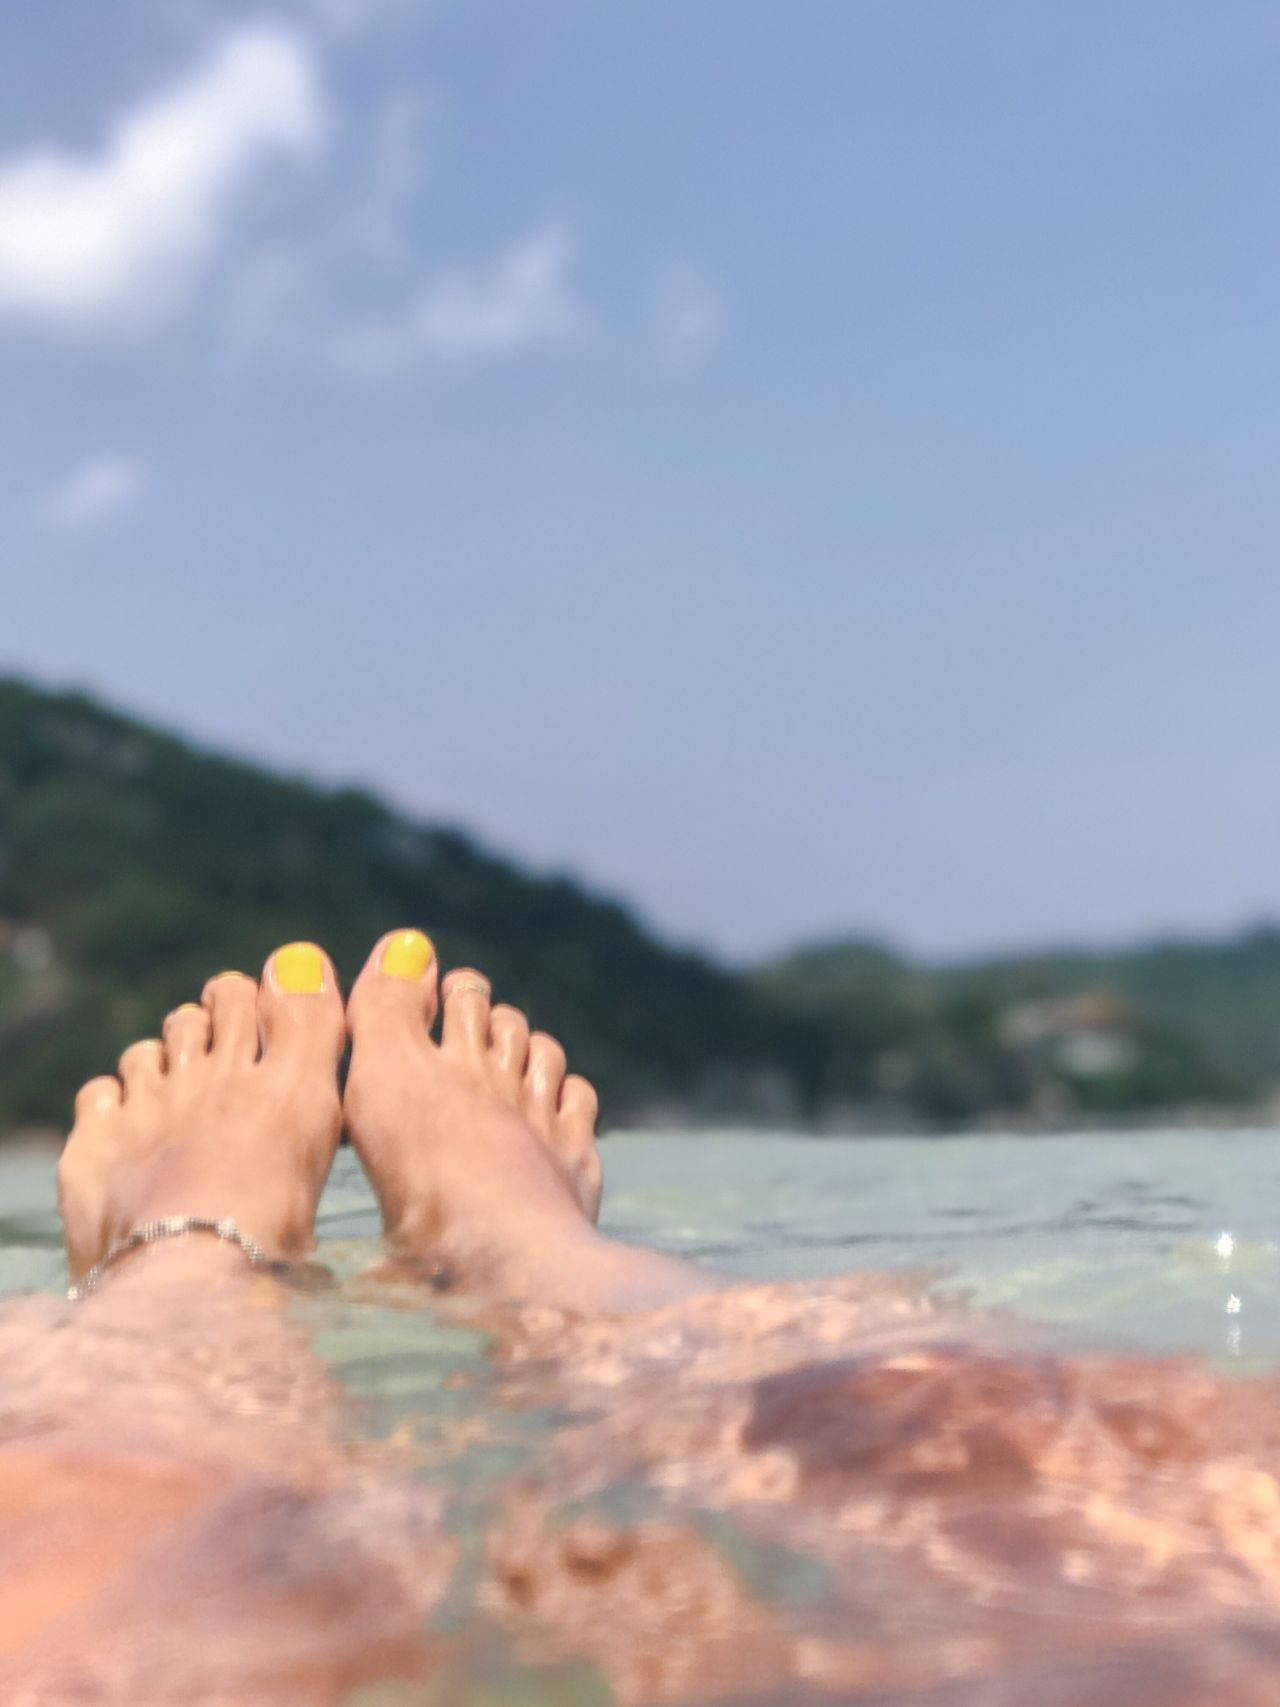 Barefoot Human Foot Low Section Human Leg Water Human Body Part Relaxation Real People One Person Outdoors Women Sea Leisure Activity Day Close-up Nail Polish Vacations Lifestyles Sky Nature Swimming Vacations Thailand Tropical Climate Travel Destinations